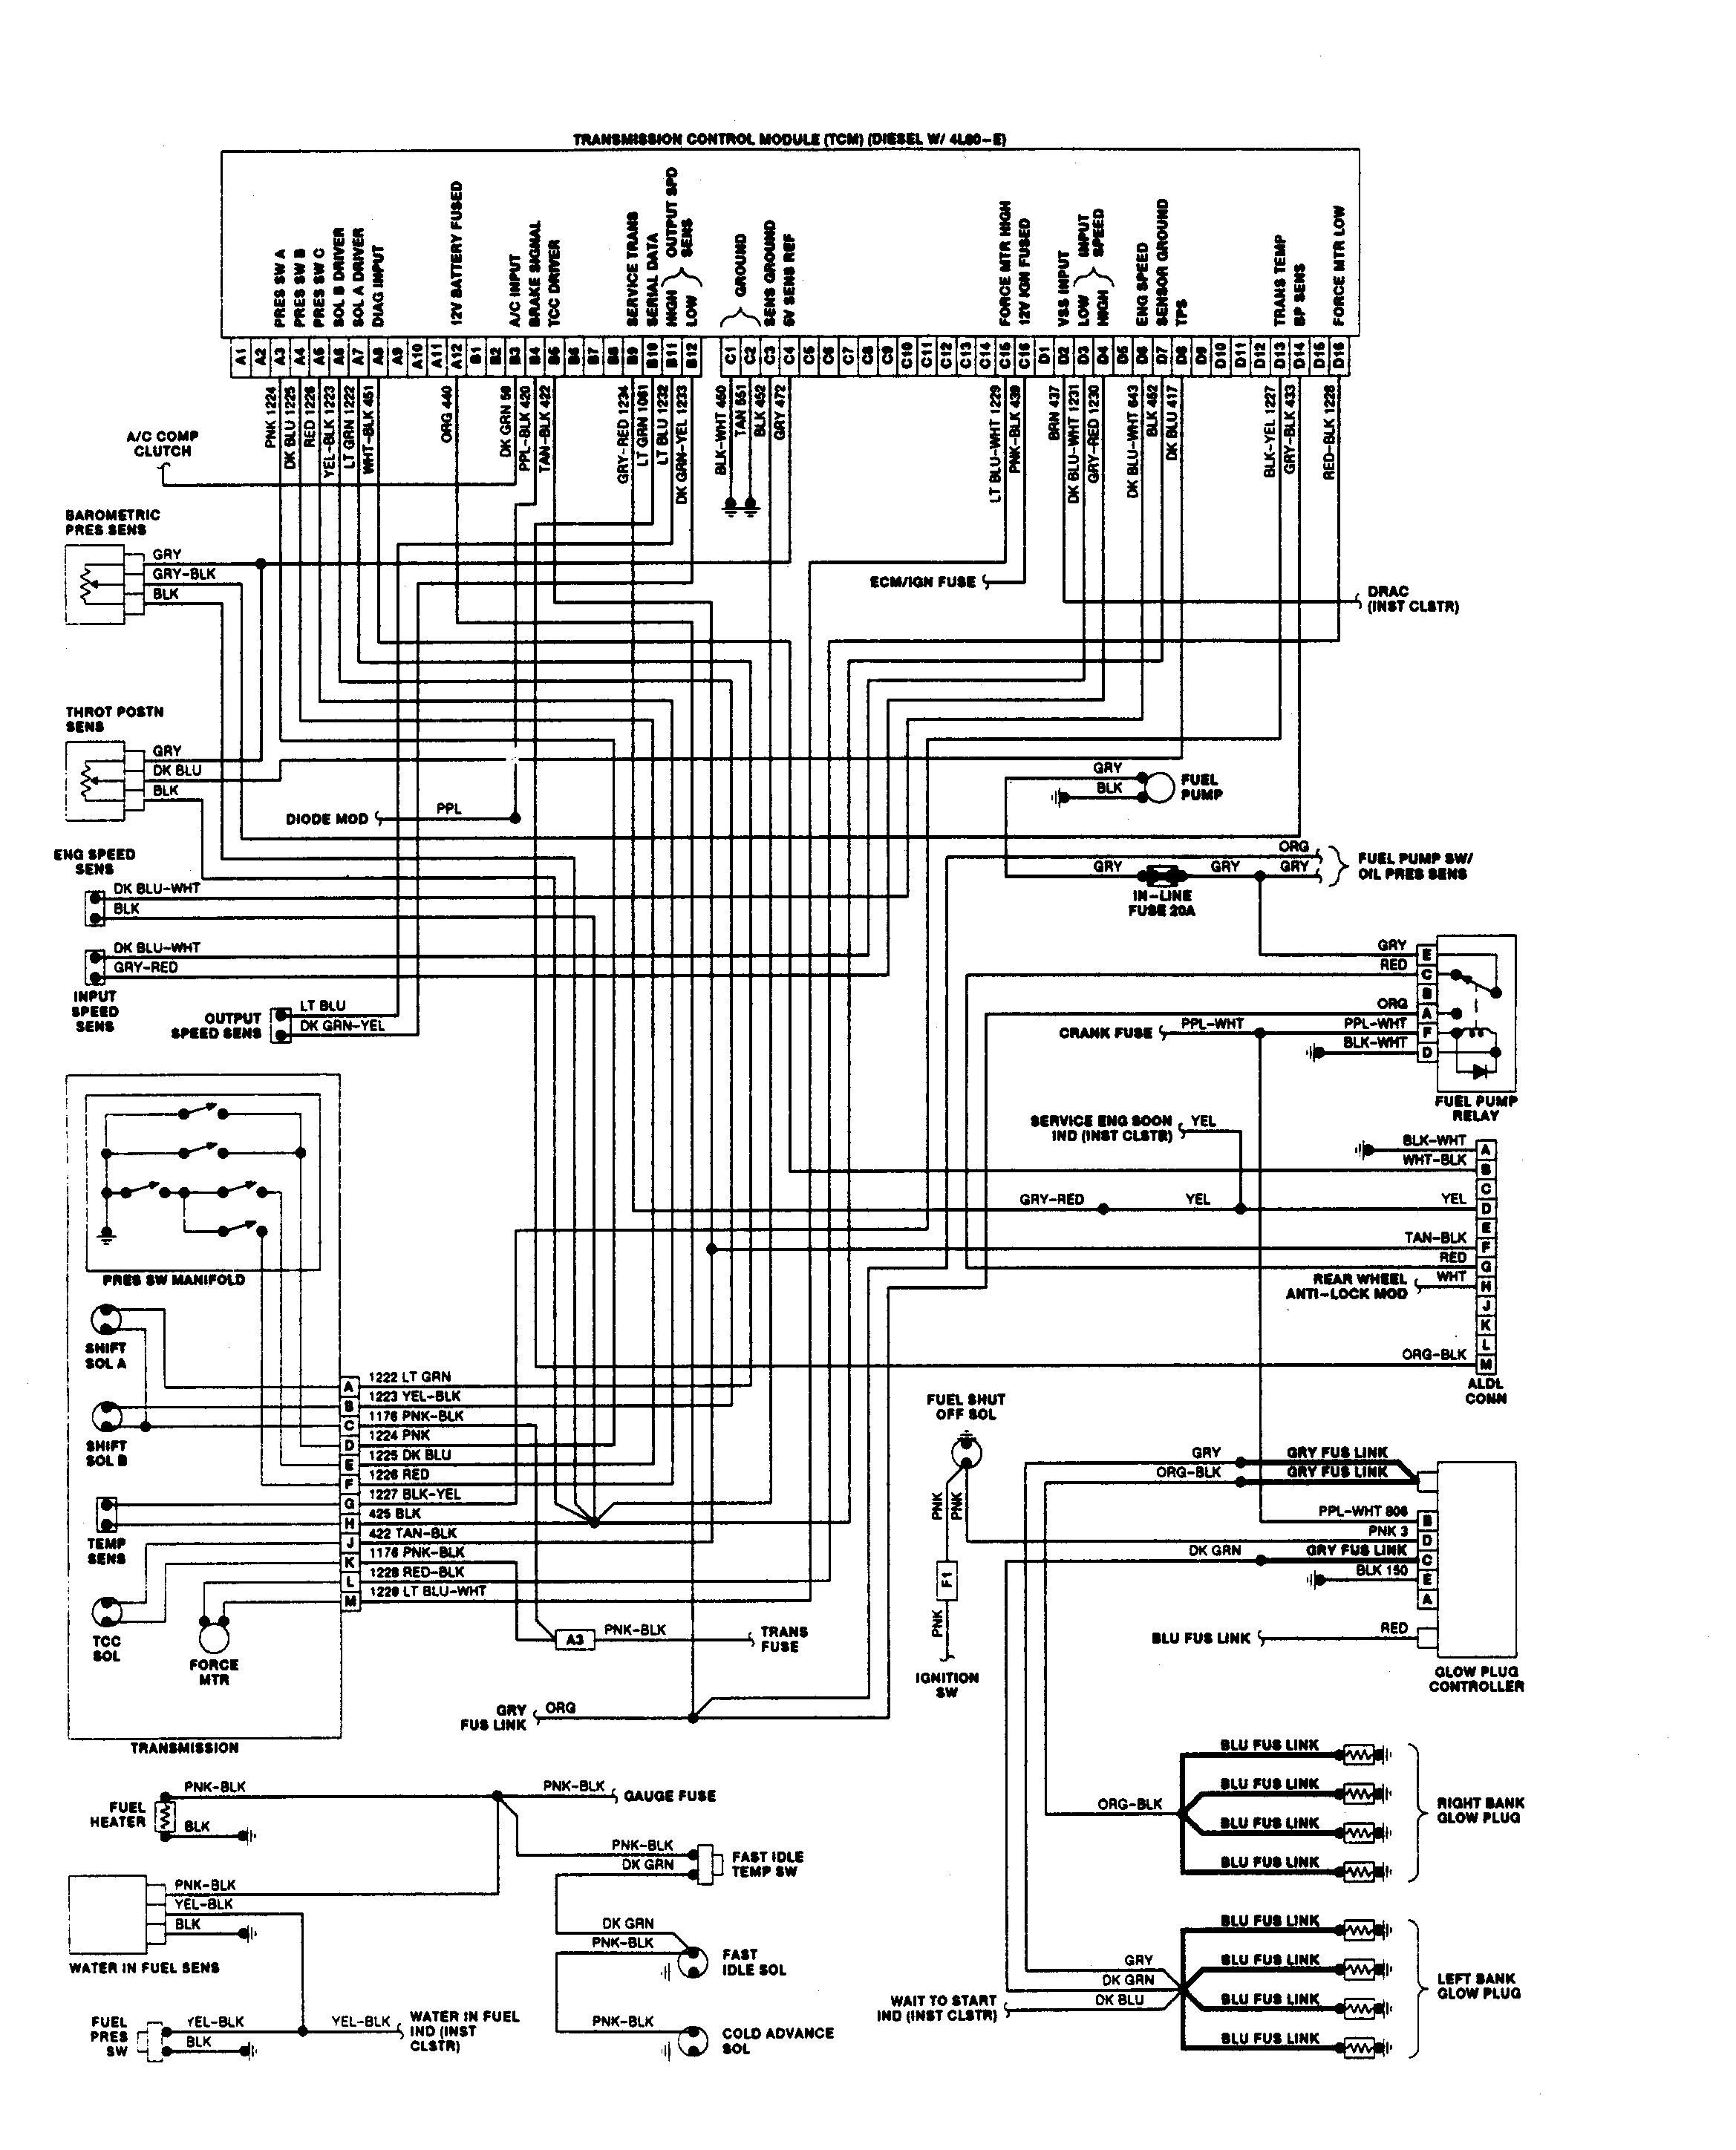 91 Chevy P30 Wiring Diagram Wiring Diagram Right Vehicle A Right Vehicle A Veronapulita It